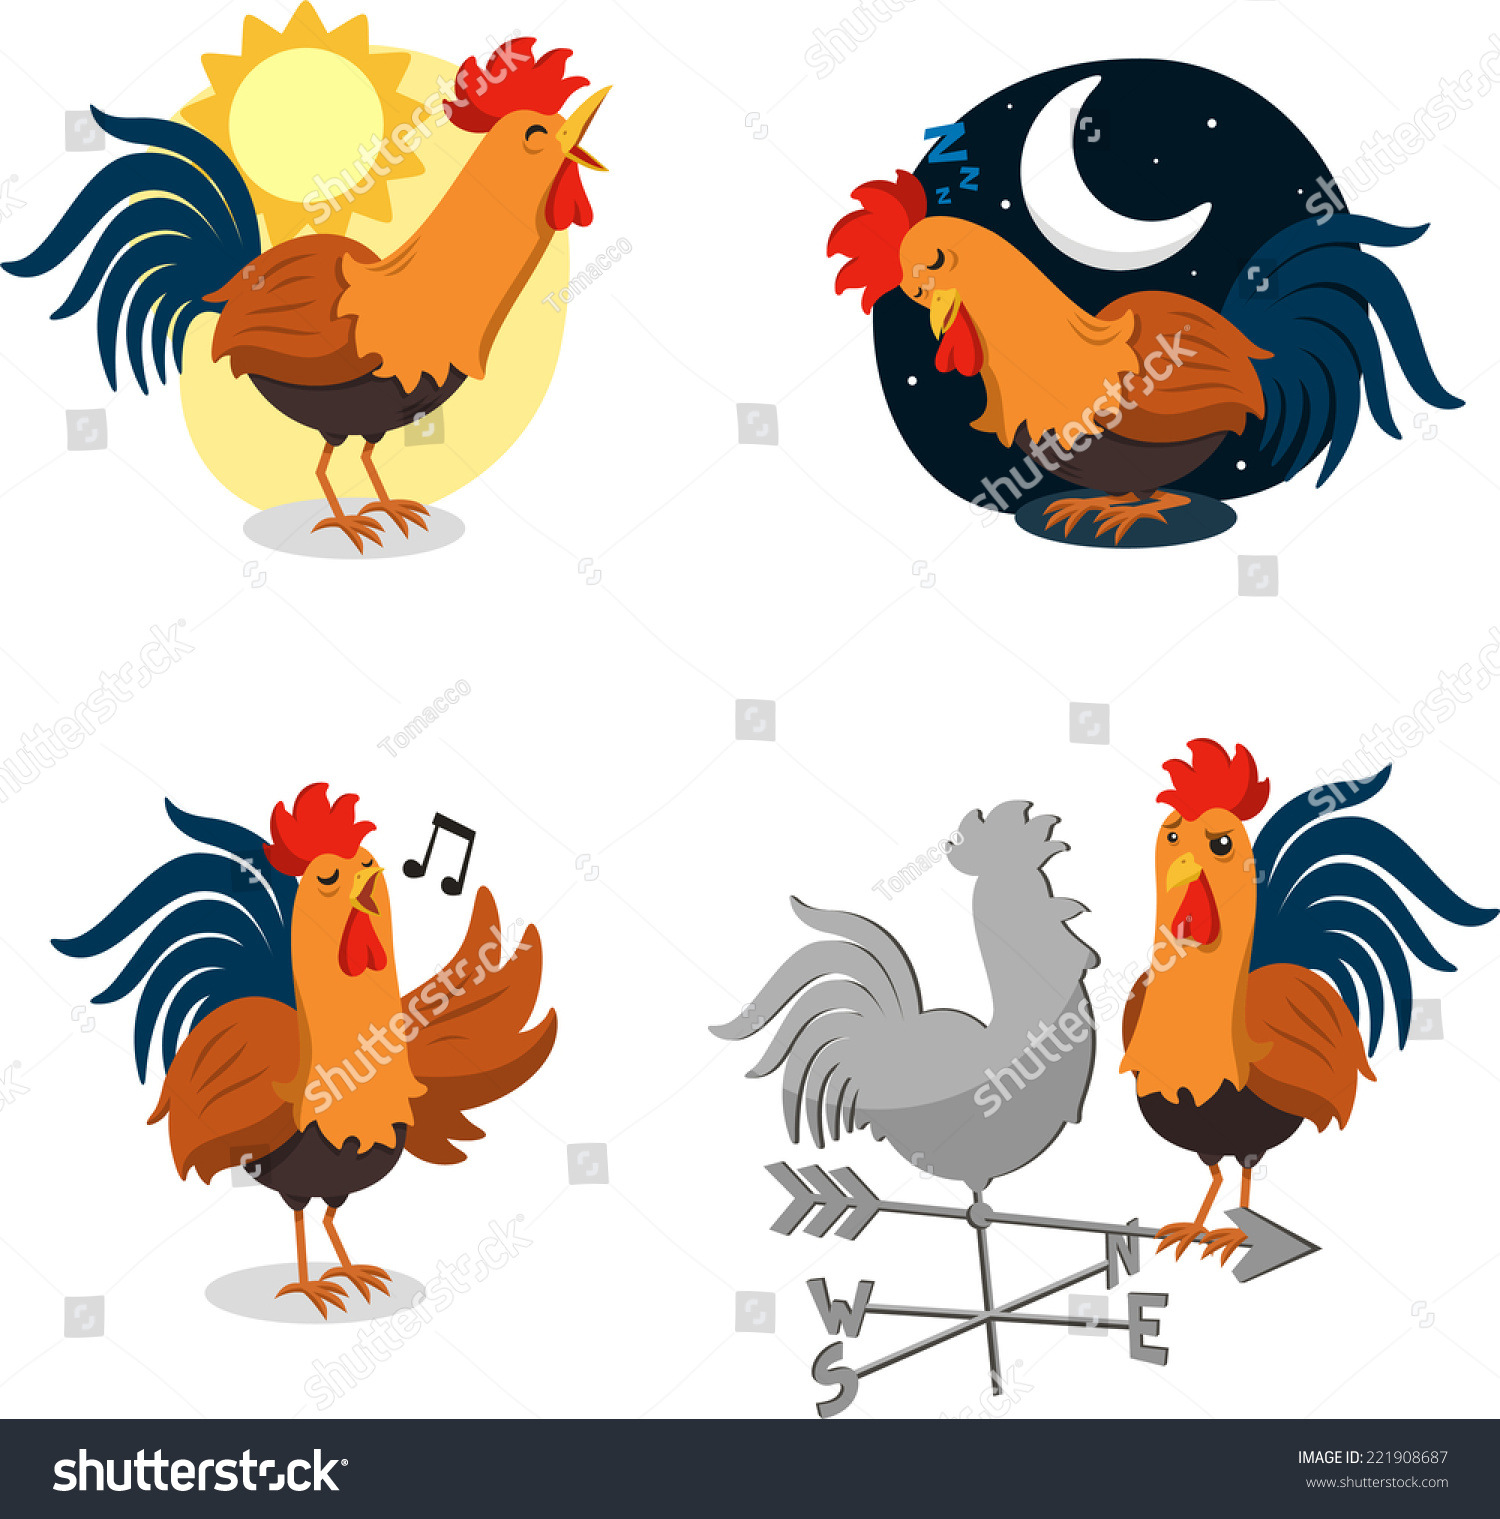 stock-vector-rooster-set-with-singing-rooster-sleeping-rooster-rooster